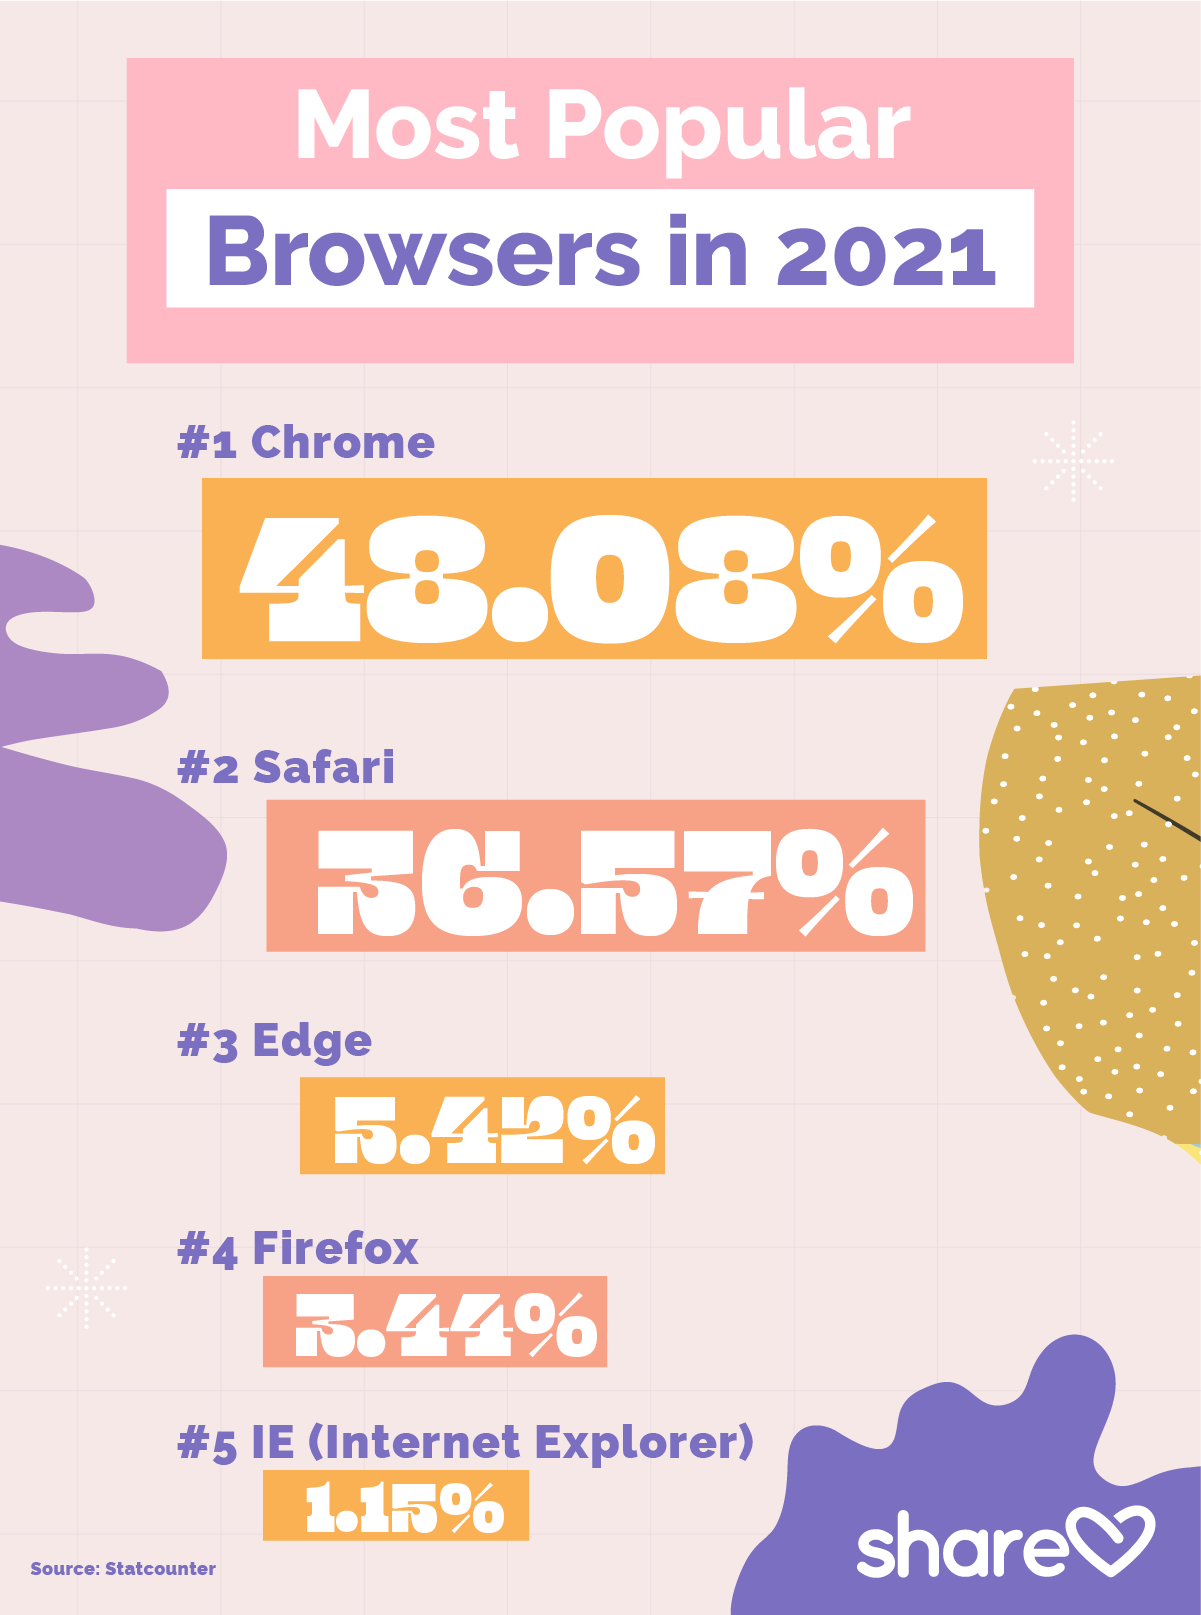 cMost Popular Browsers in 2021